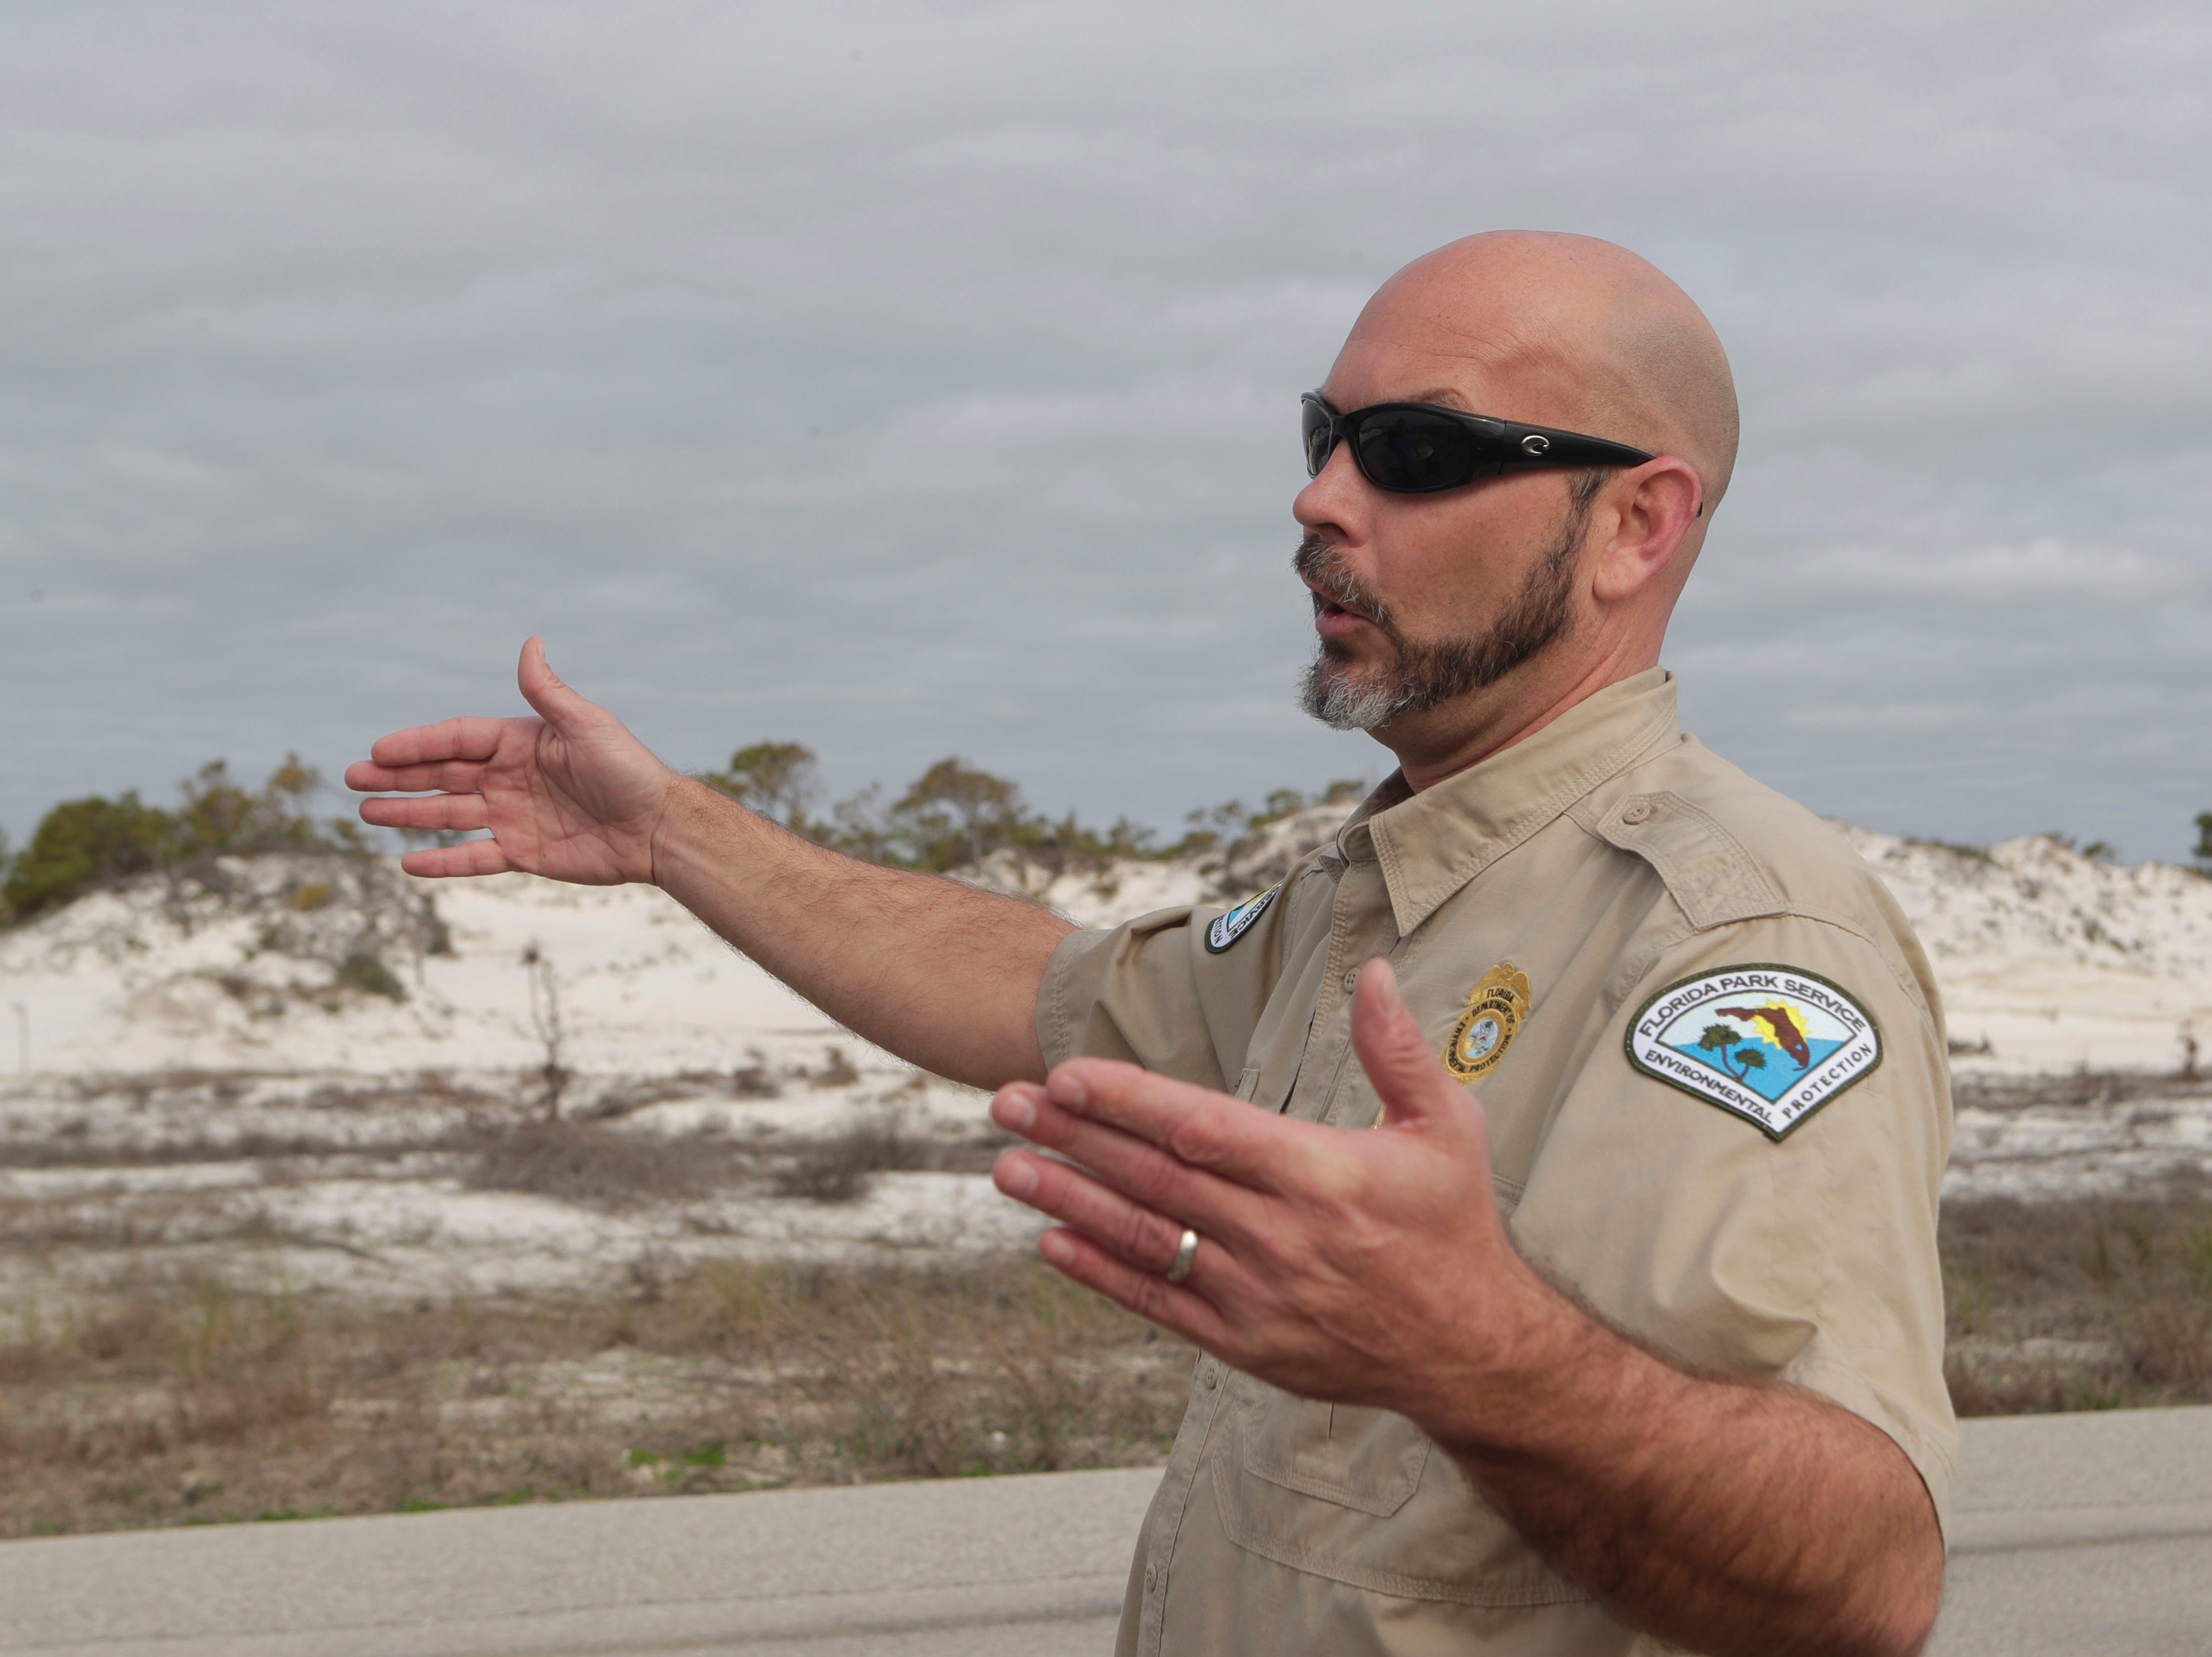 Josh Hodson, park ranger at St. George Island State Park, talks about how the dunes closer to shore were washed away during Hurricane Michael in Oct. 2018. The dunes across the street from the beachfront are untouched, Tuesday Feb. 19, 2018.